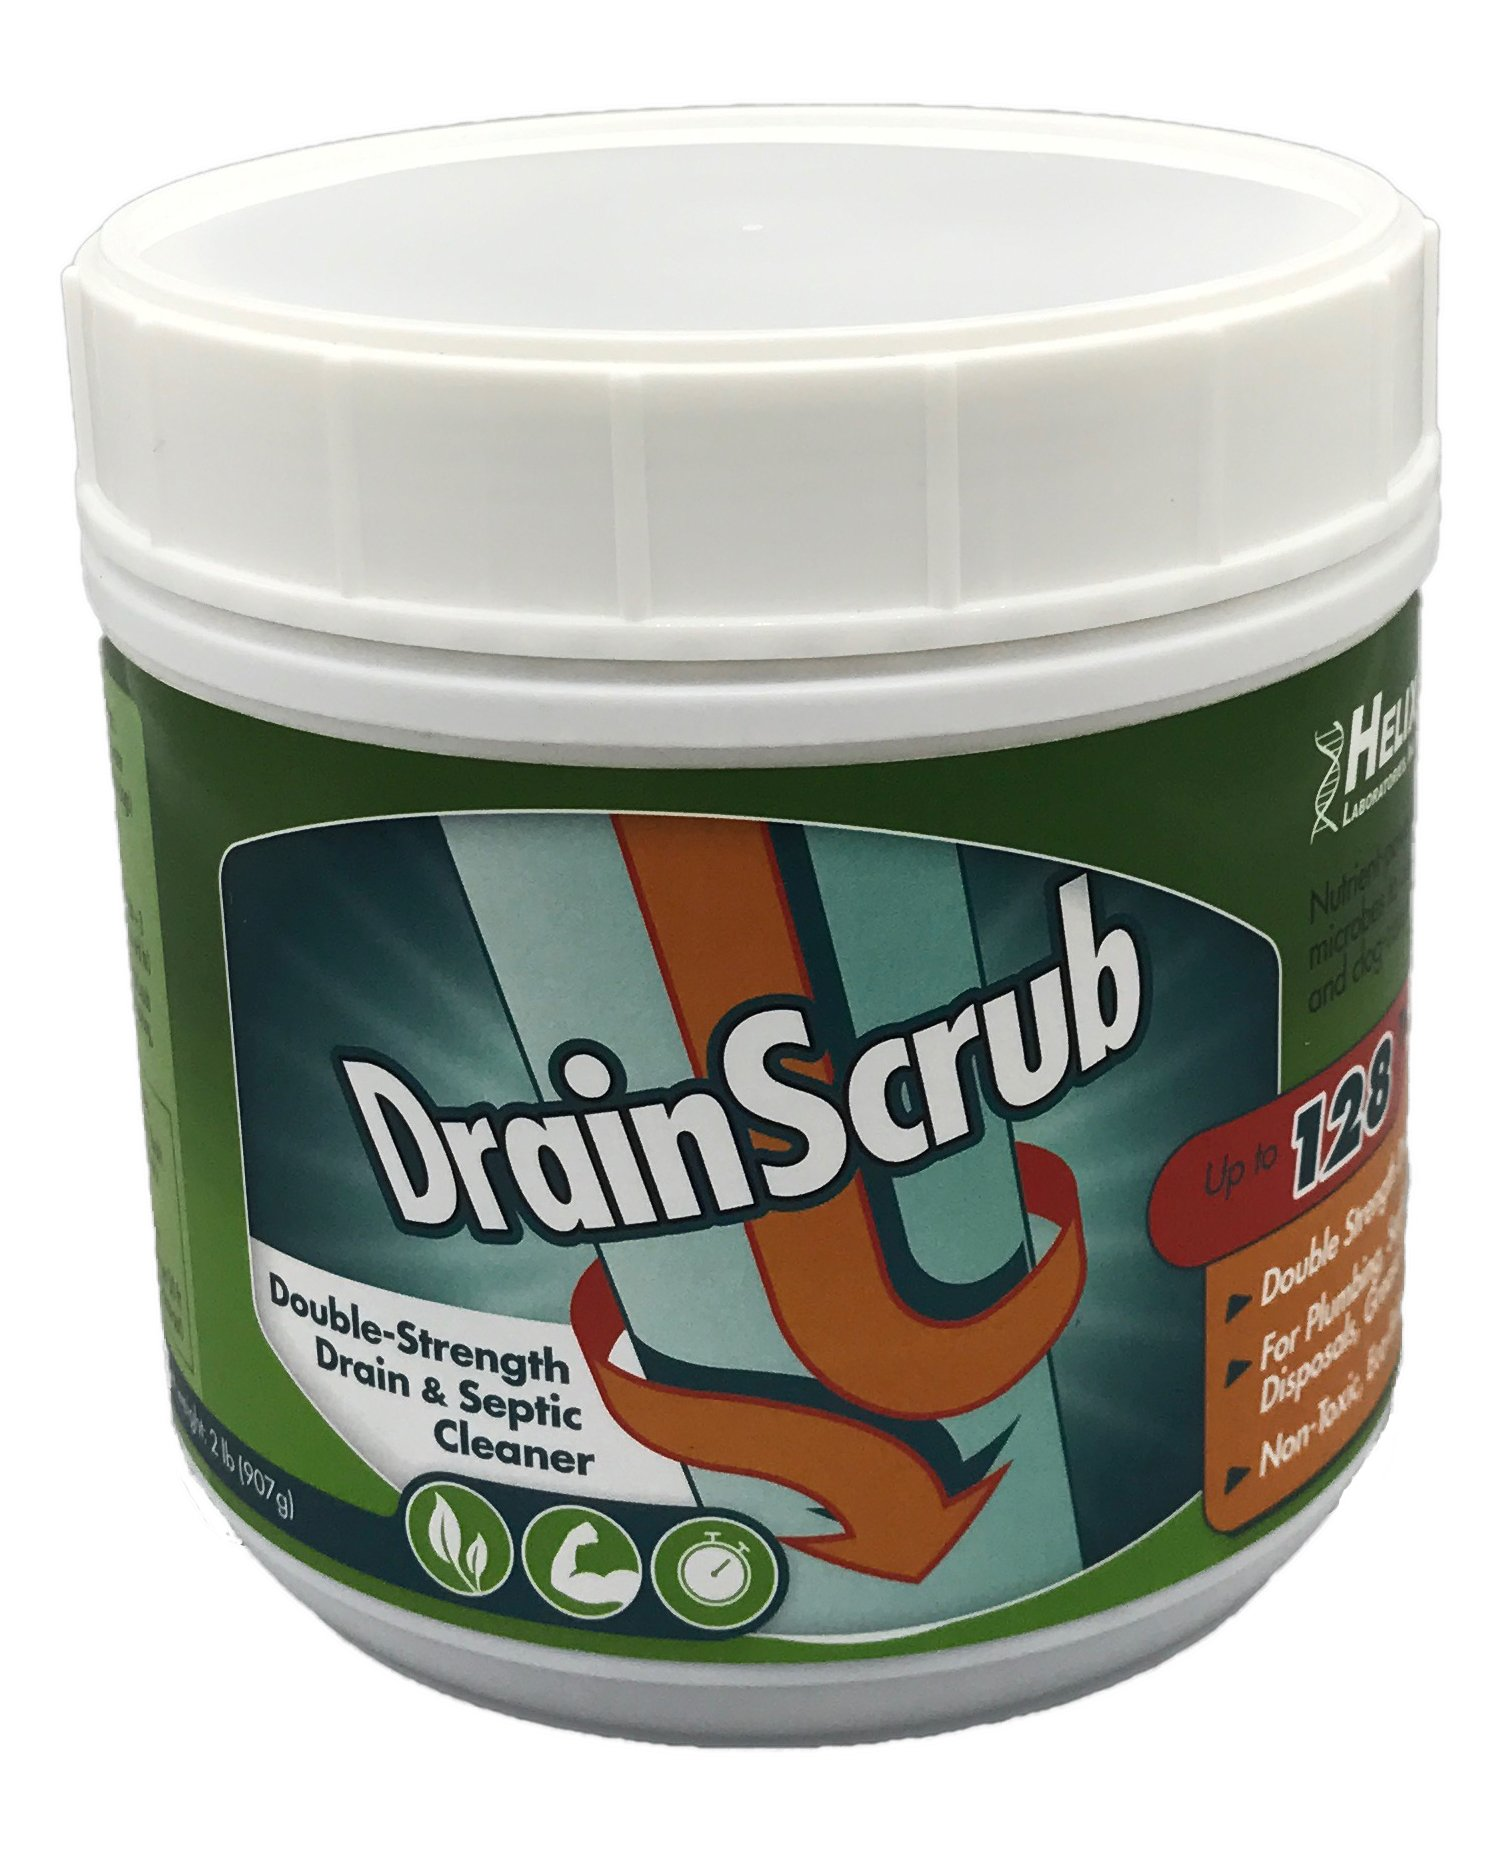 DrainScrub Powder Enzyme Drain Cleaner and Septic Treatment Environmentally Friendly Bacteria Unclog and Deodorize Pipes (2 lbs) by HELIX LABORATORIES, INC.